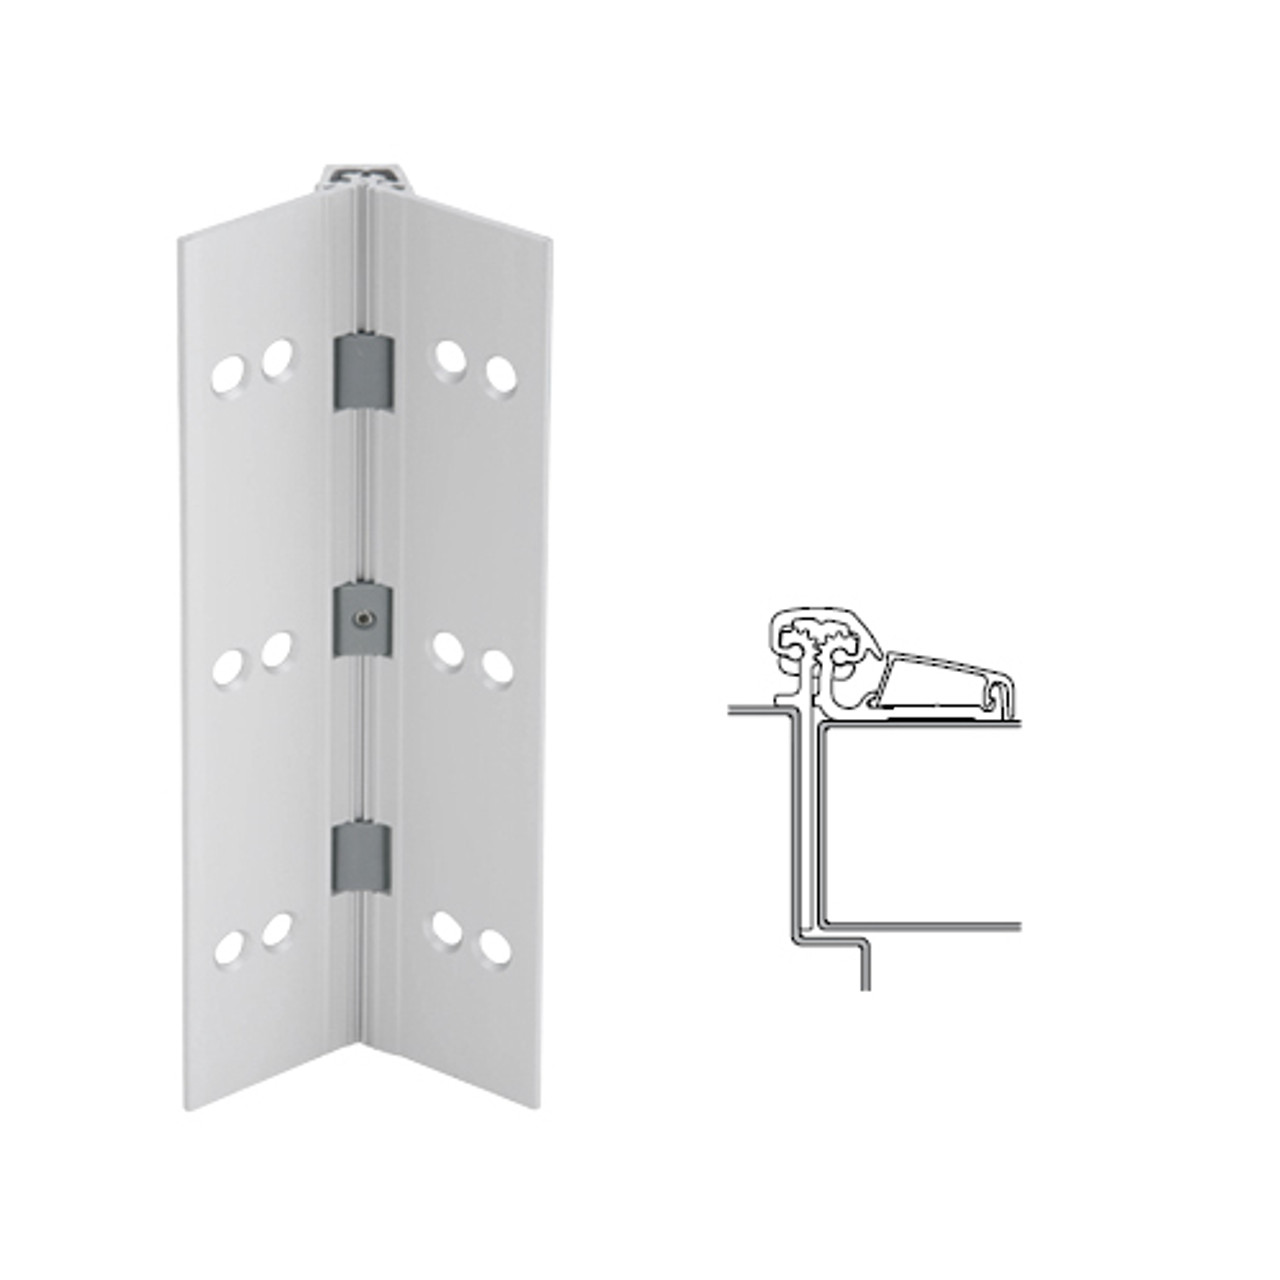 054XY-US28-83-SECWDWD IVES Adjustable Half Surface Continuous Geared Hinges with Security Screws - Hex Pin Drive in Satin Aluminum